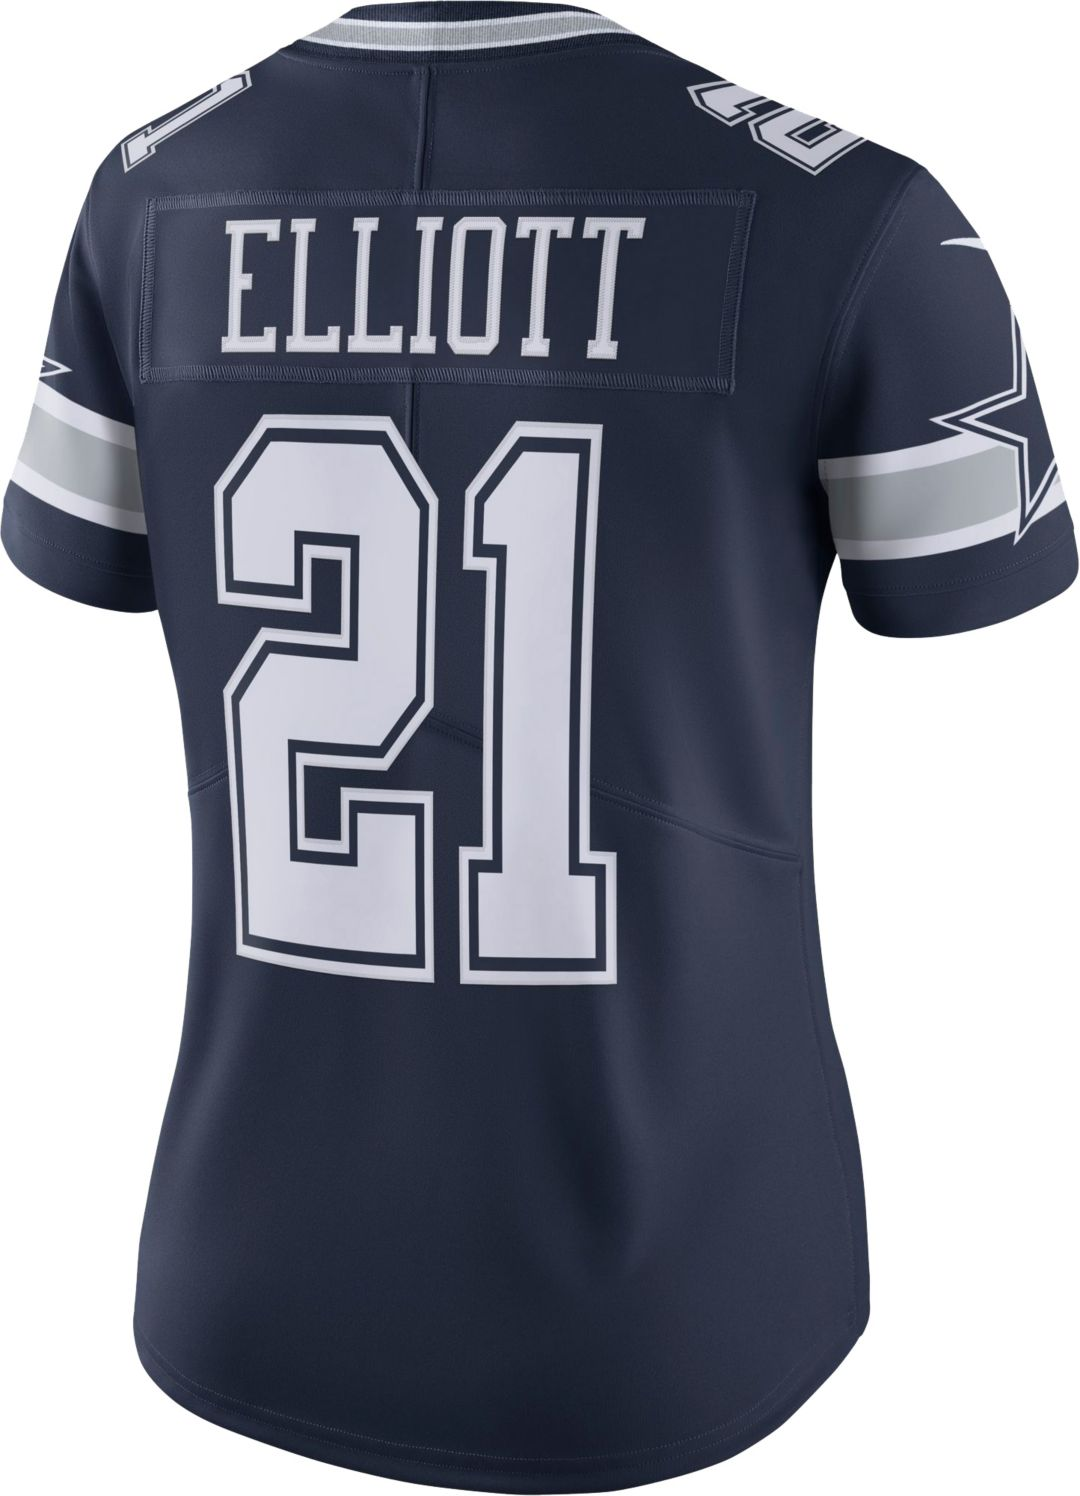 info for 65d01 d8d22 Nike Women's Limited Jersey Dallas Cowboys Ezekiel Elliott #21